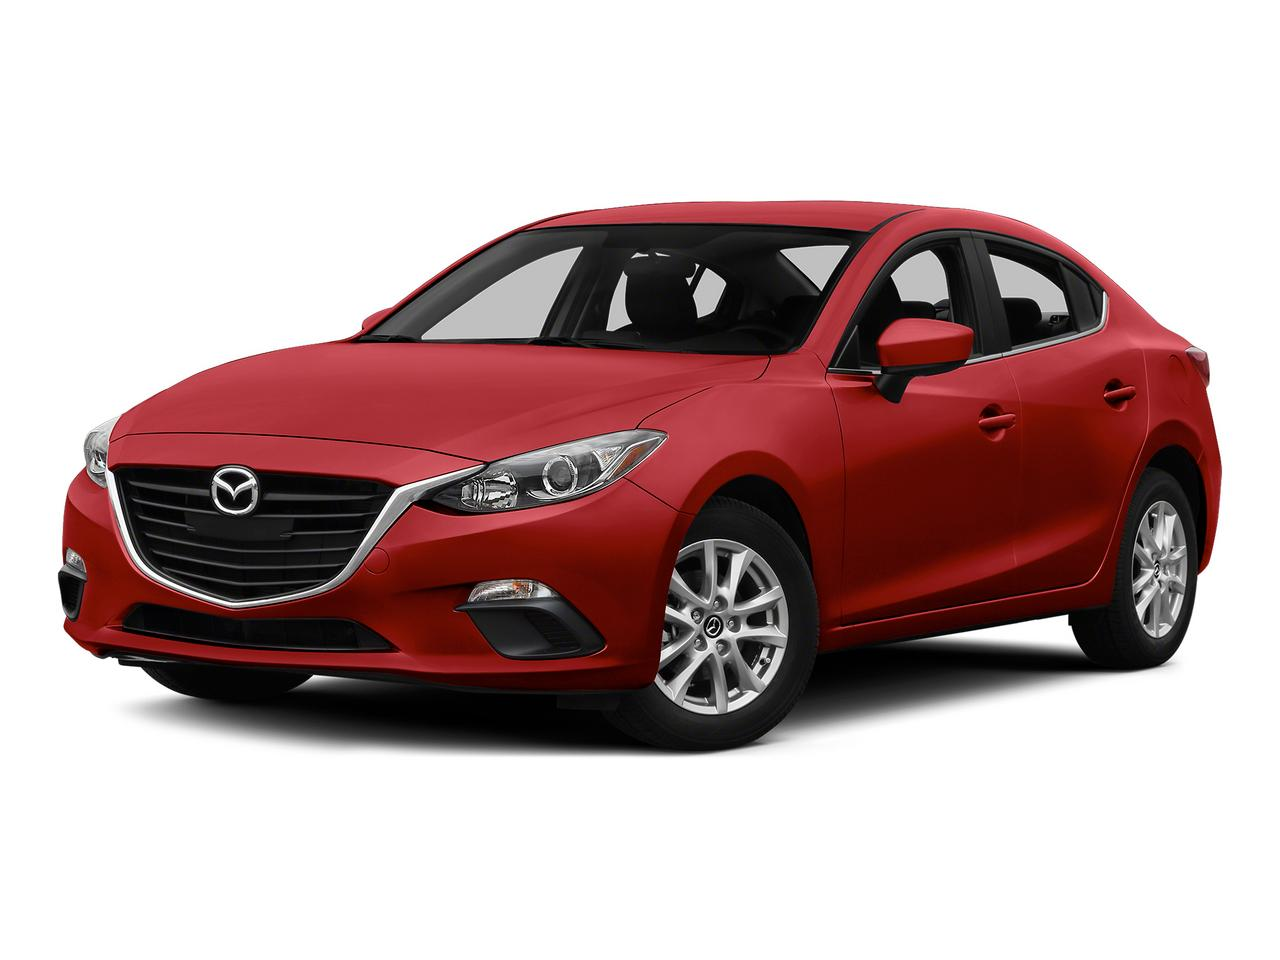 2015 Mazda Mazda3 Vehicle Photo in Bowie, MD 20716